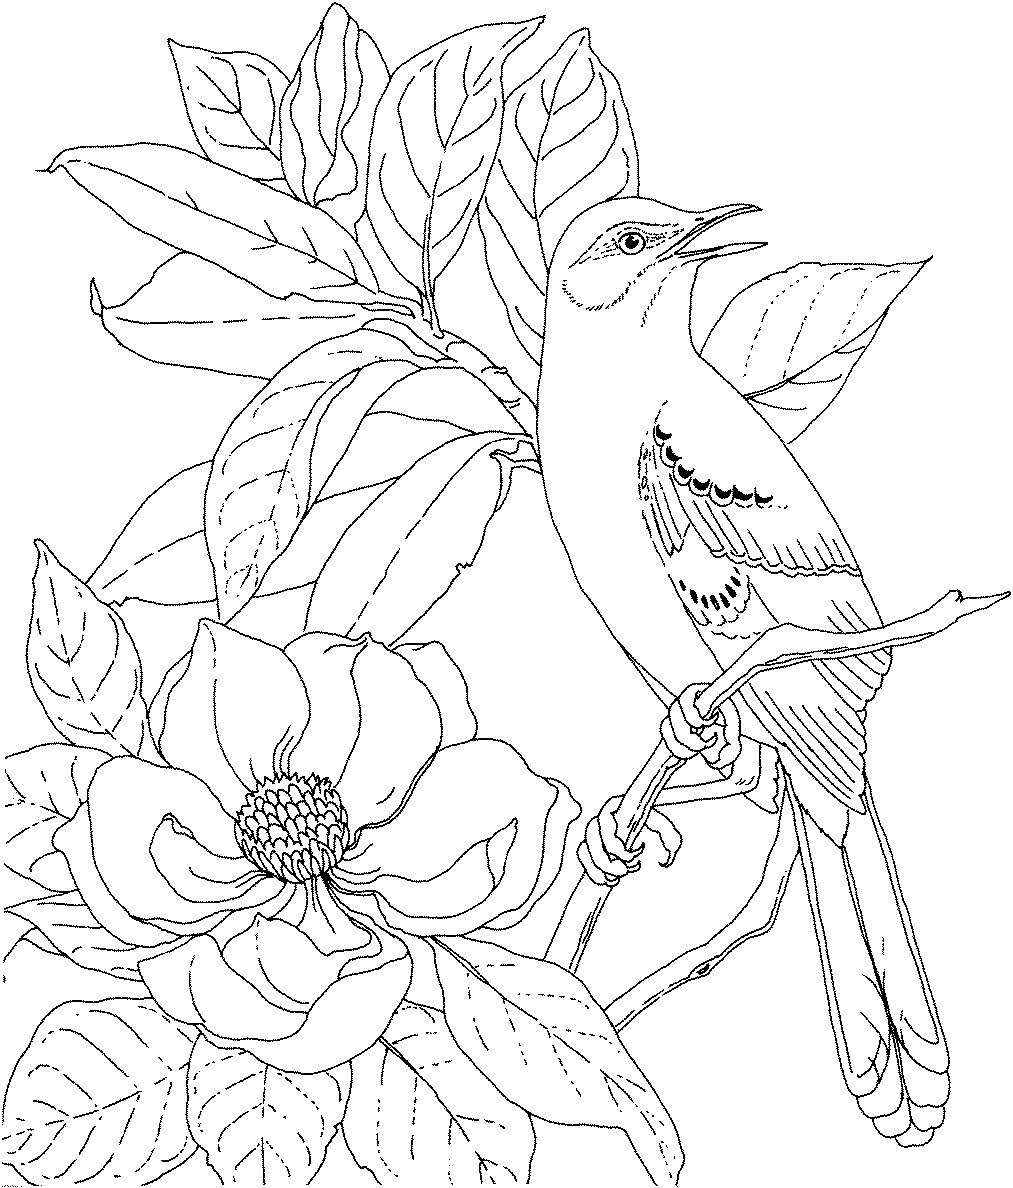 Coloring Pages Birds Realistic Fresh Birds And Flowers Coloring Pages Imagixs Coloring Pages Birds R Bird Coloring Pages Flower Coloring Pages Coloring Pages